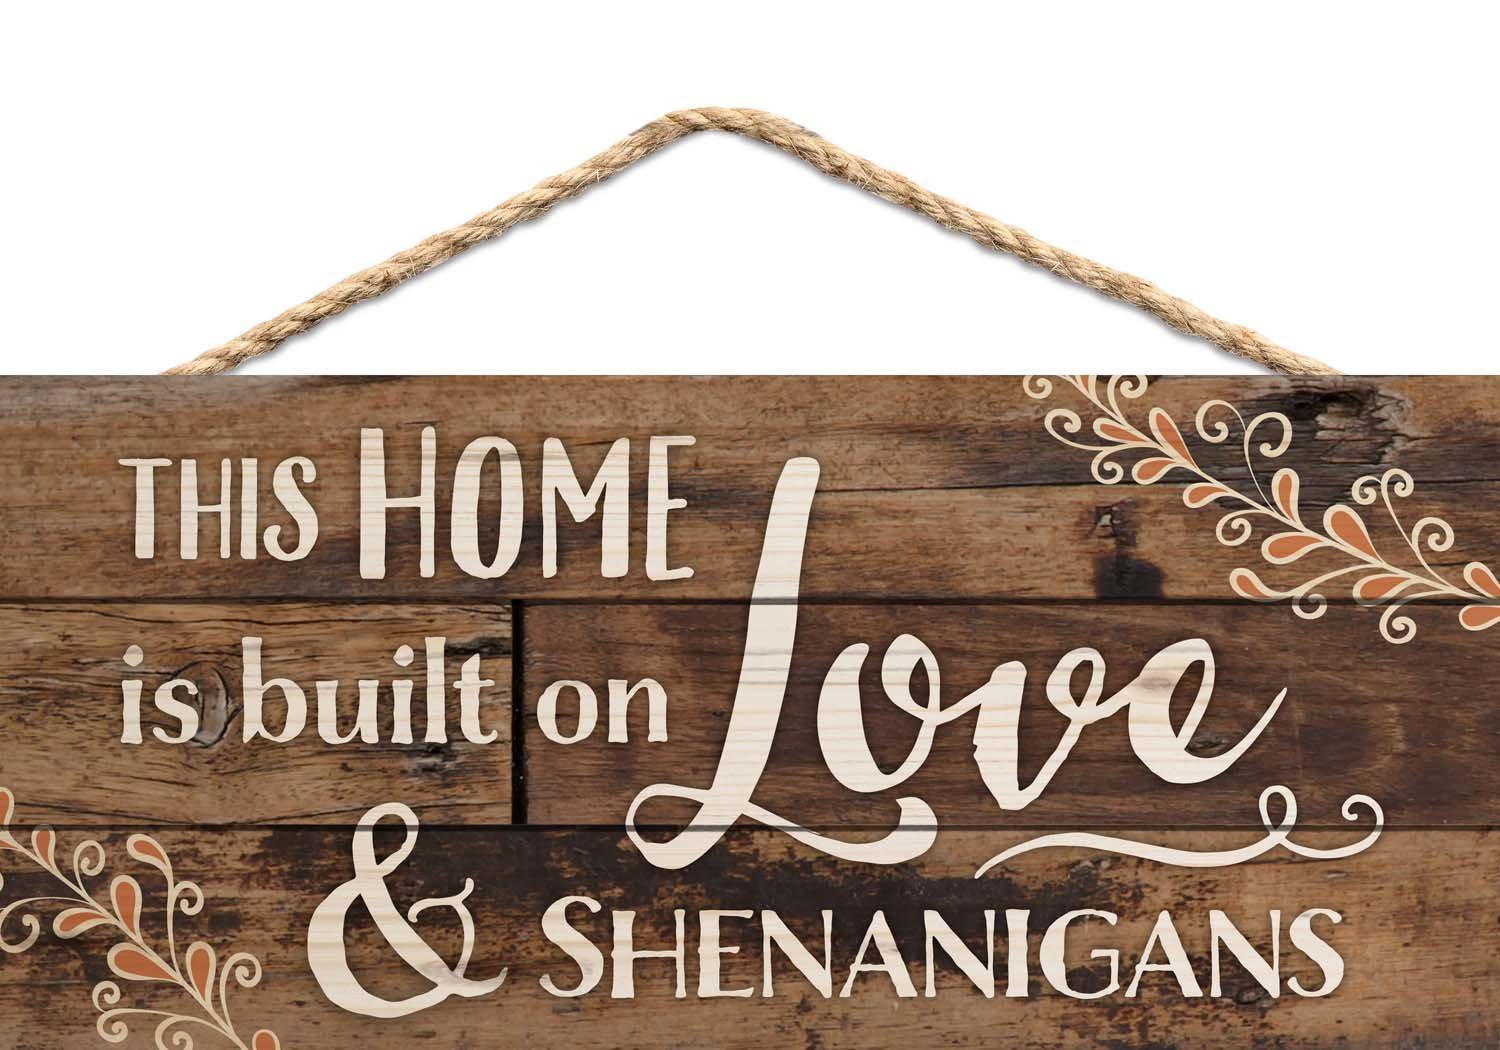 Amazon Uniquepig This House Is Built On Love And Shenanigans Rustic Wood Signs Home Decor Wooden Hanging Plaque 20x30cm Kitchen